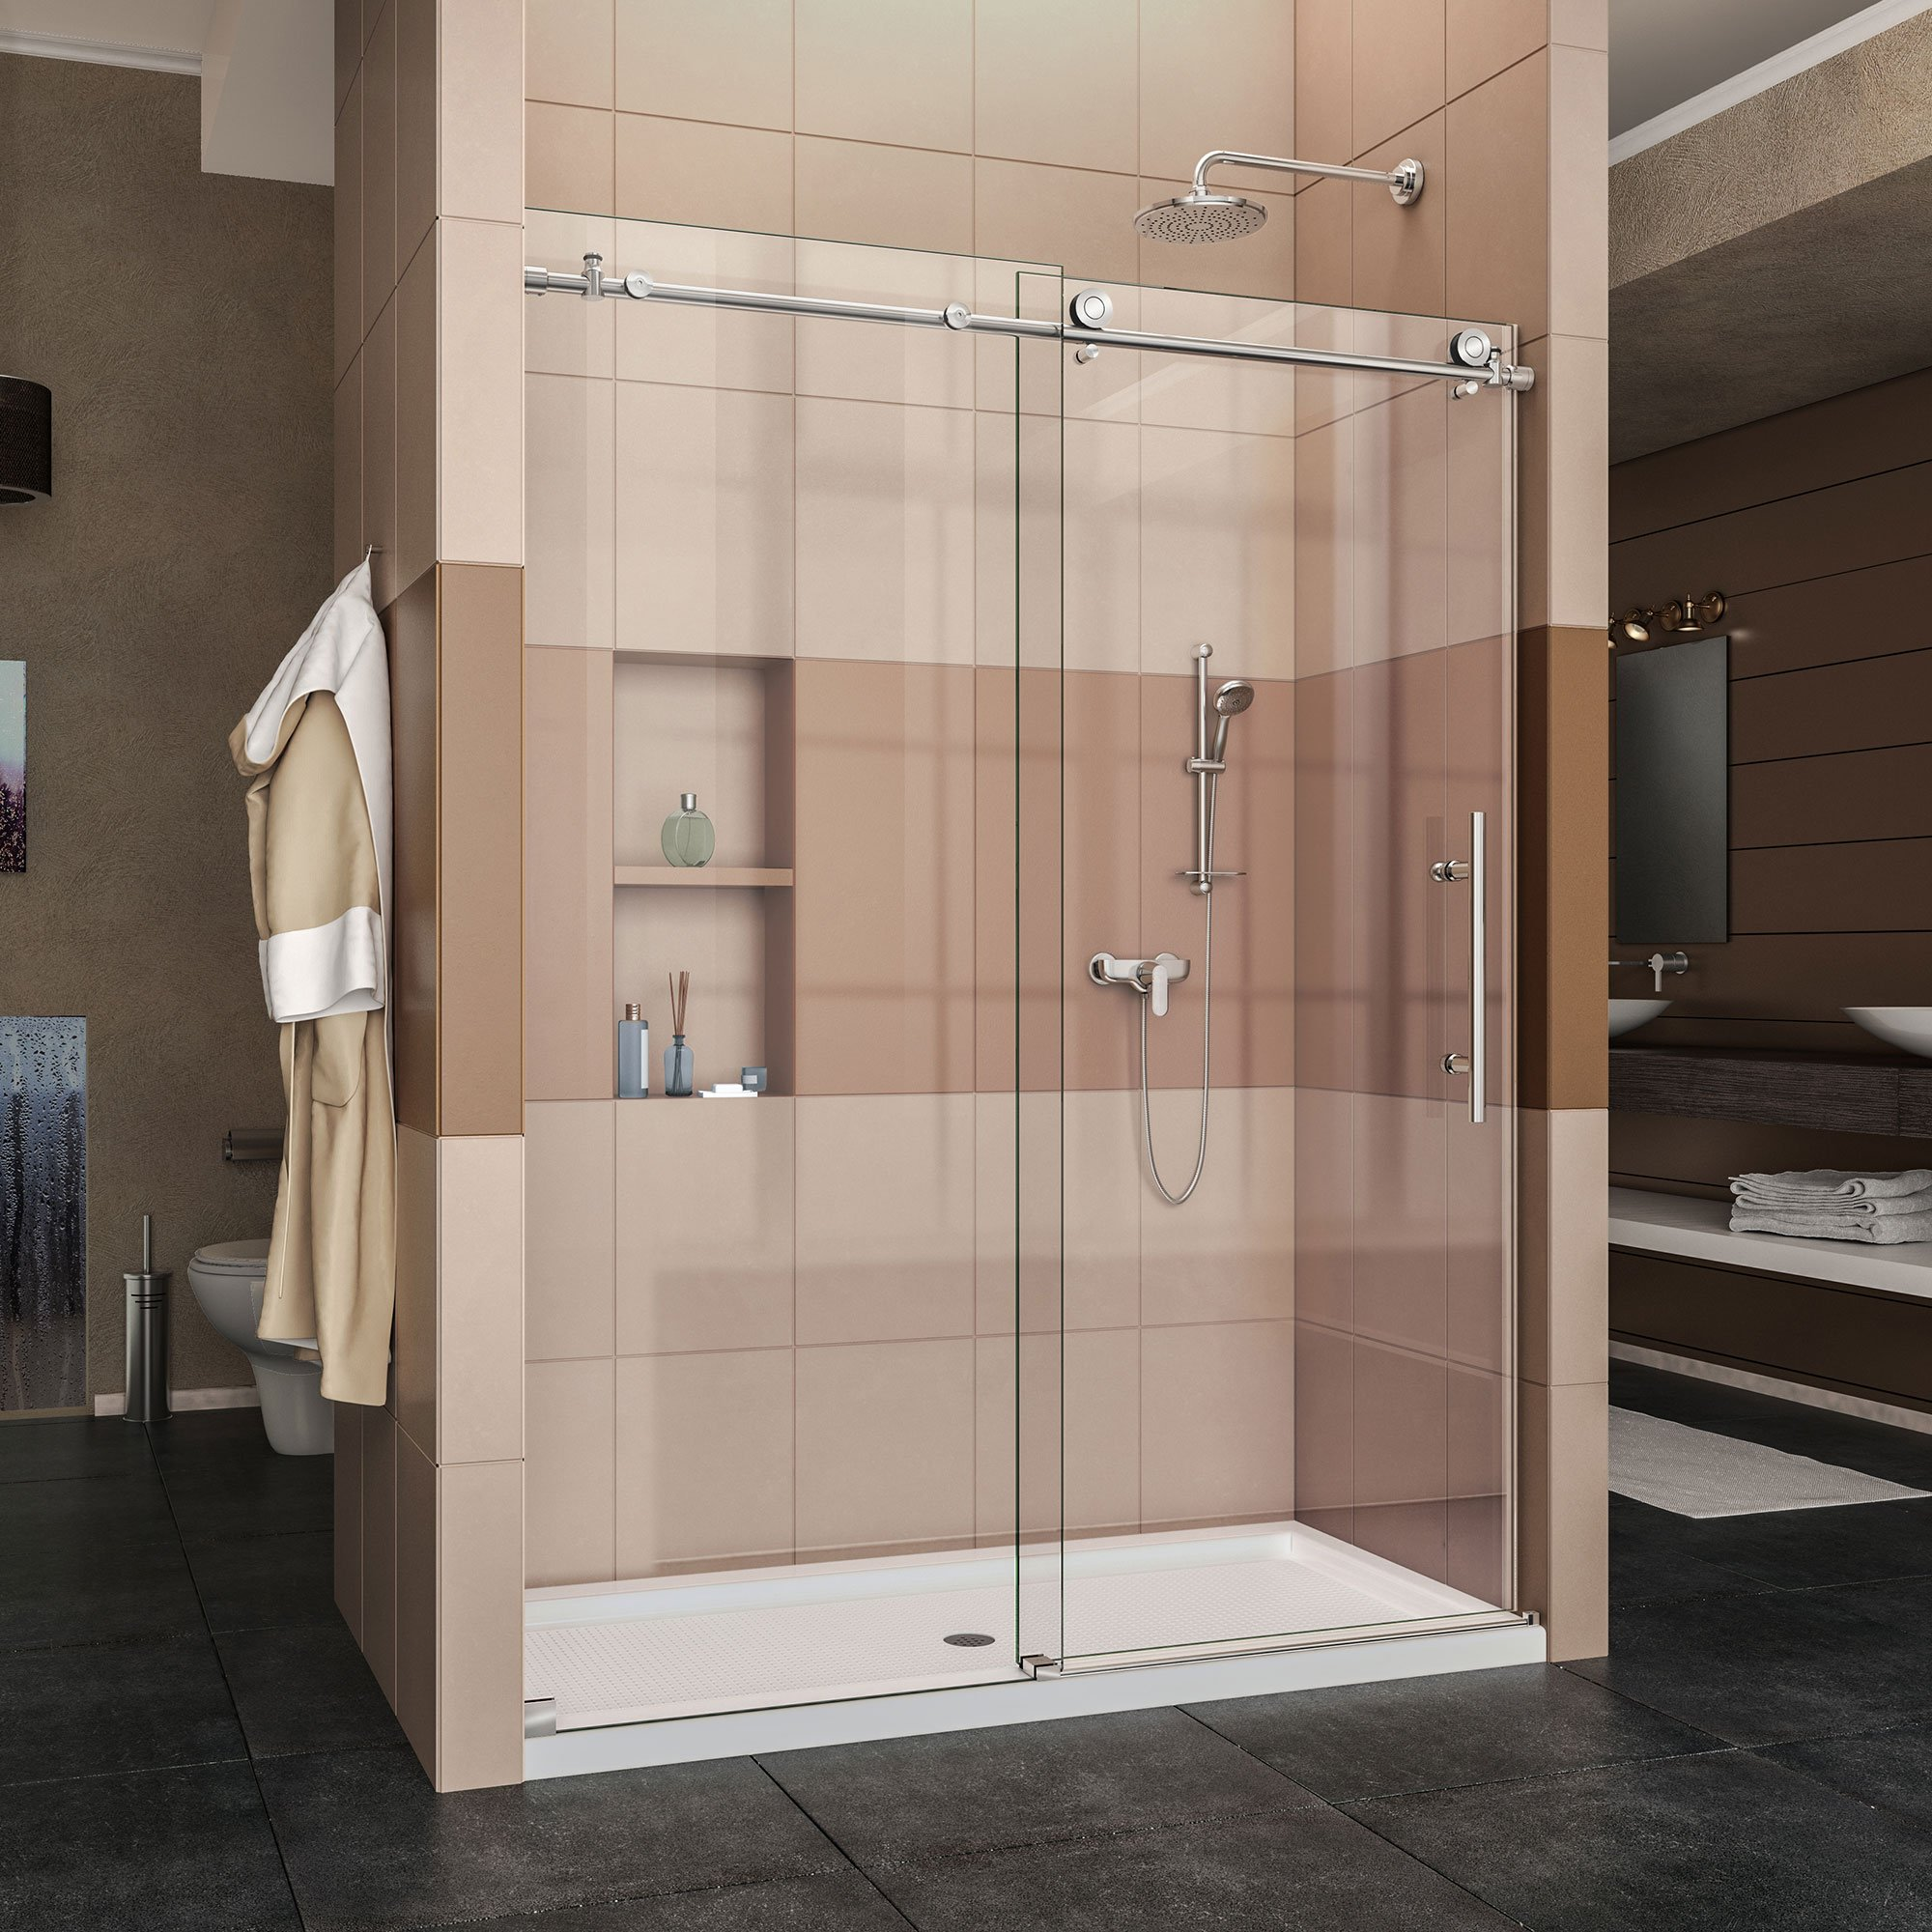 DreamLine Enigma-X 56-60 in. Width, Frameless Sliding Shower Door, 3/8'' Glass, Polished Stainless Steel Finish